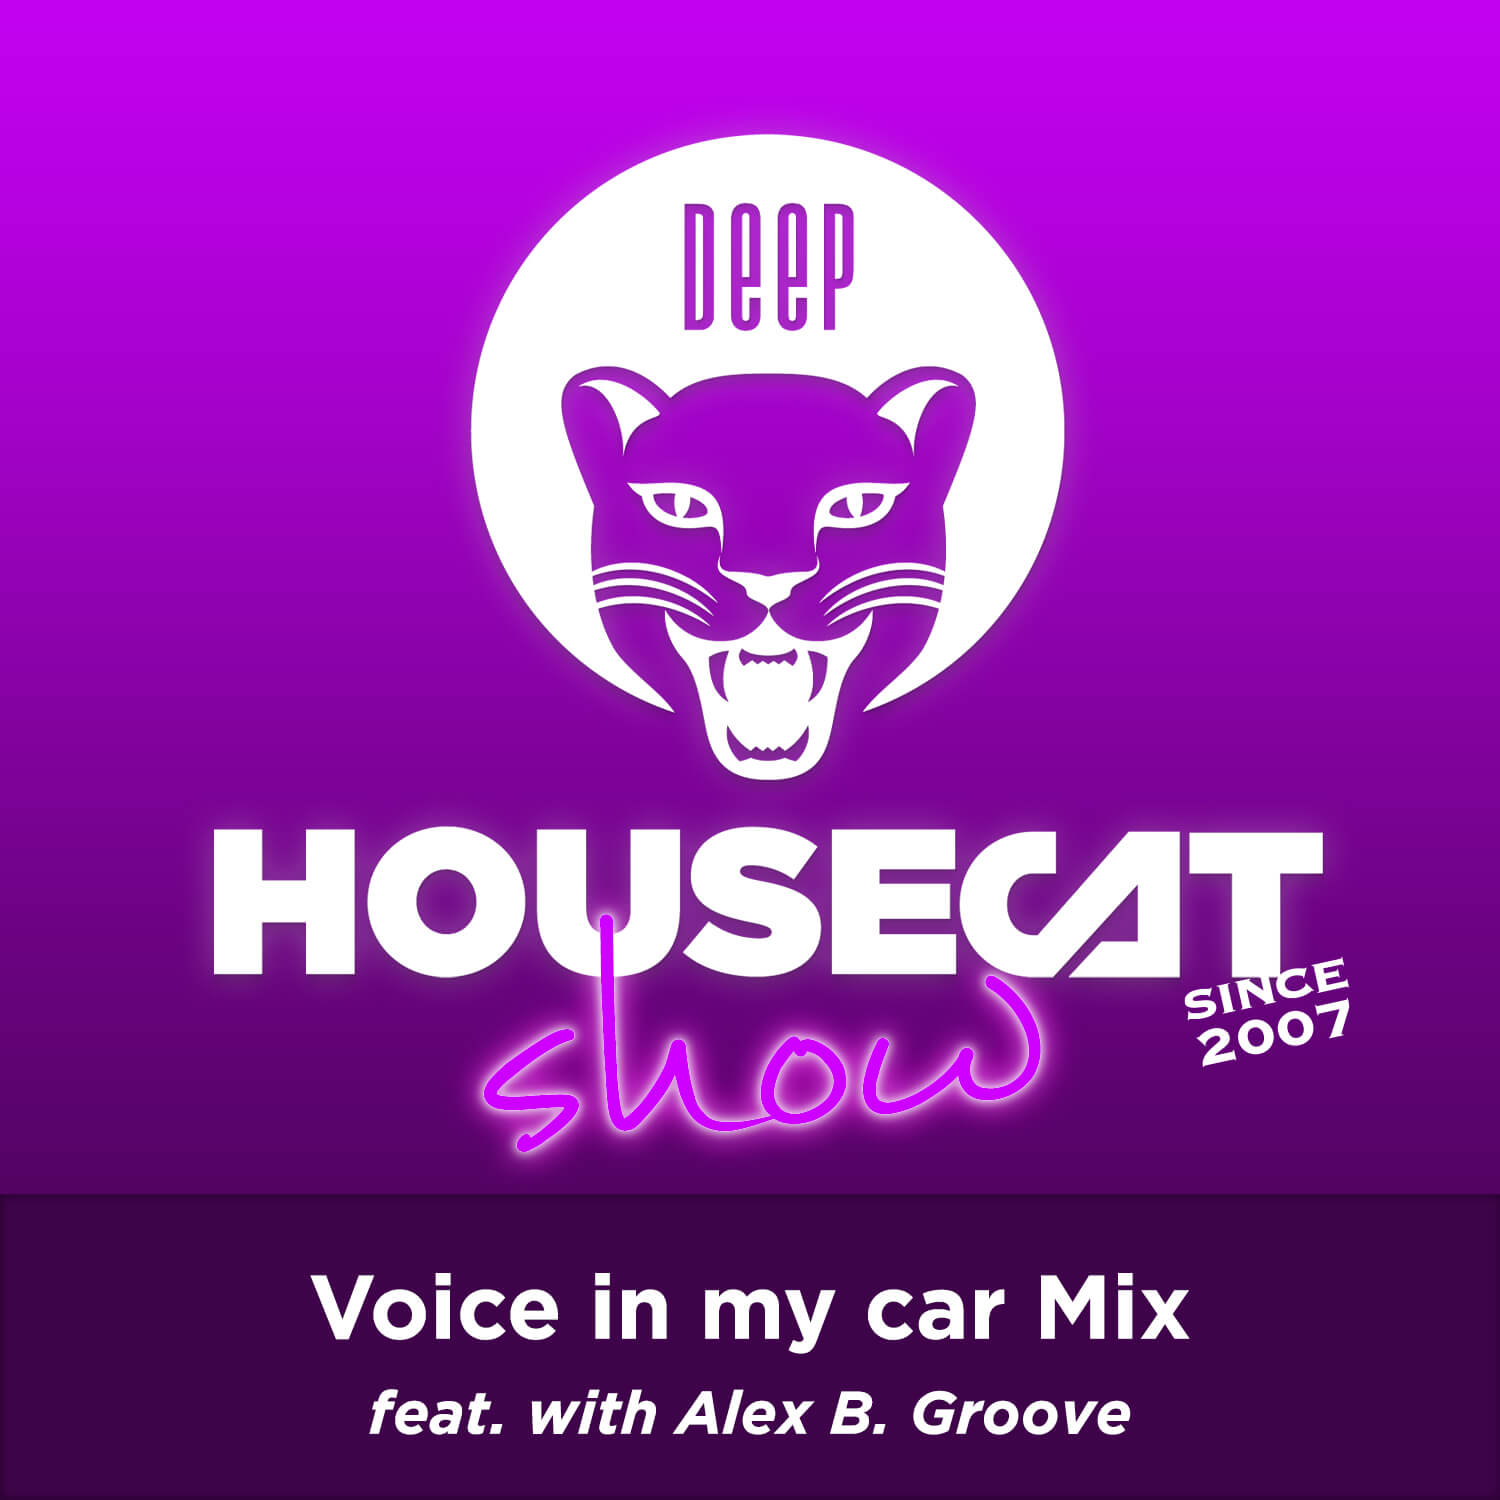 Deep House Cat Show - Voice in my car Mix - with Alex B. Groove